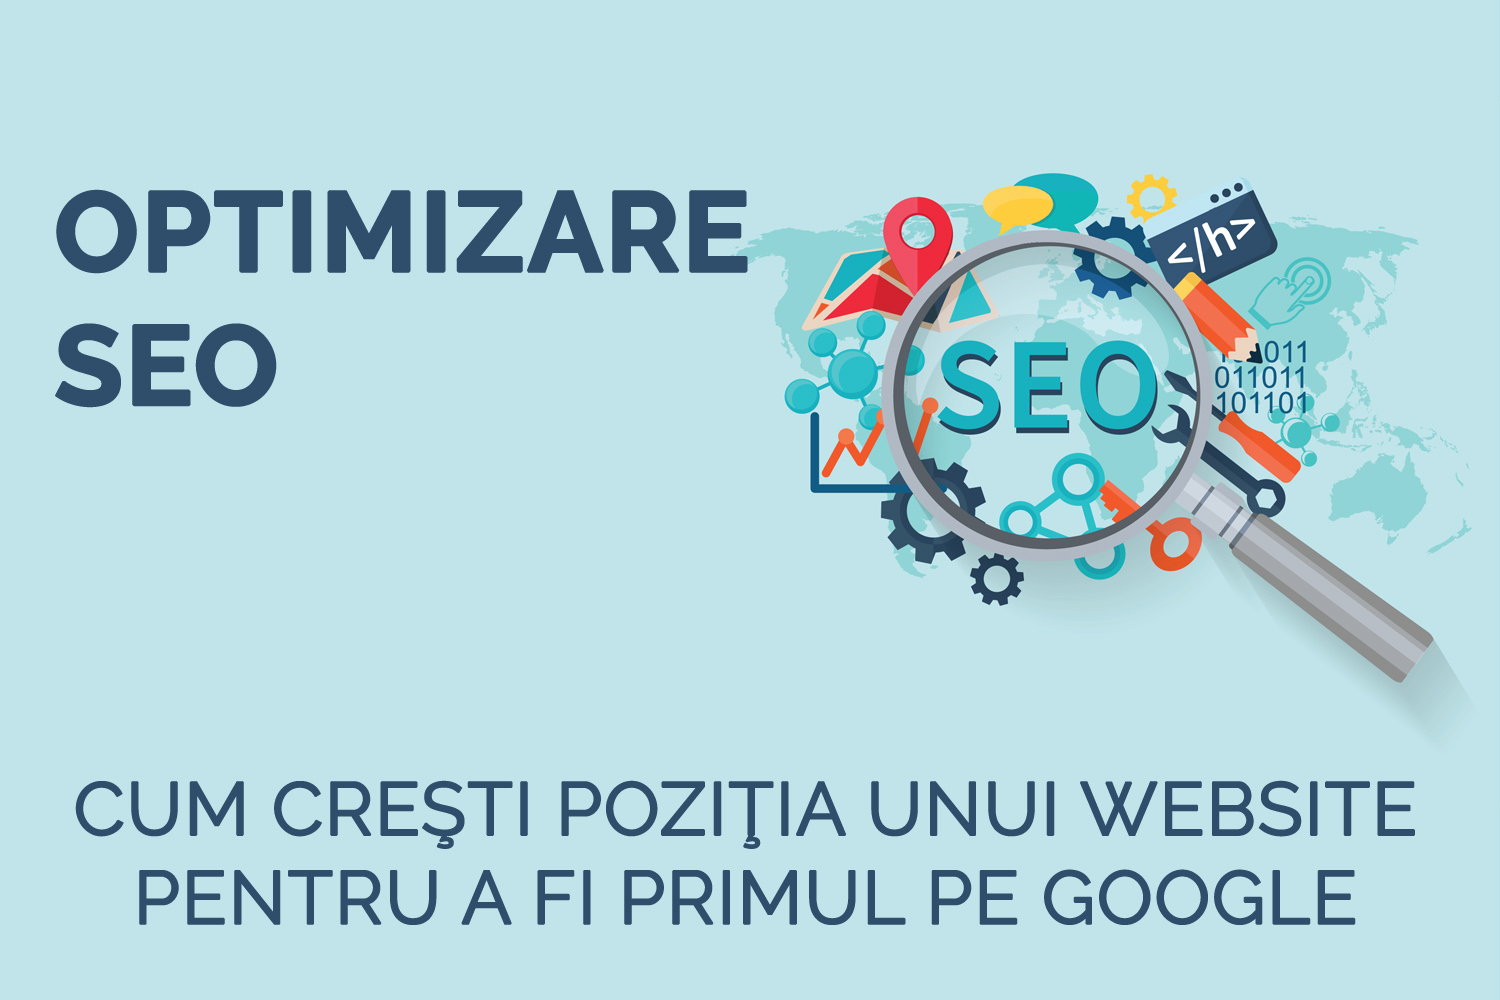 Optimizare Seo Google - Agentie Optimizare SEO Timisoara - Servicii Optimizare website - seo site web - web marketing